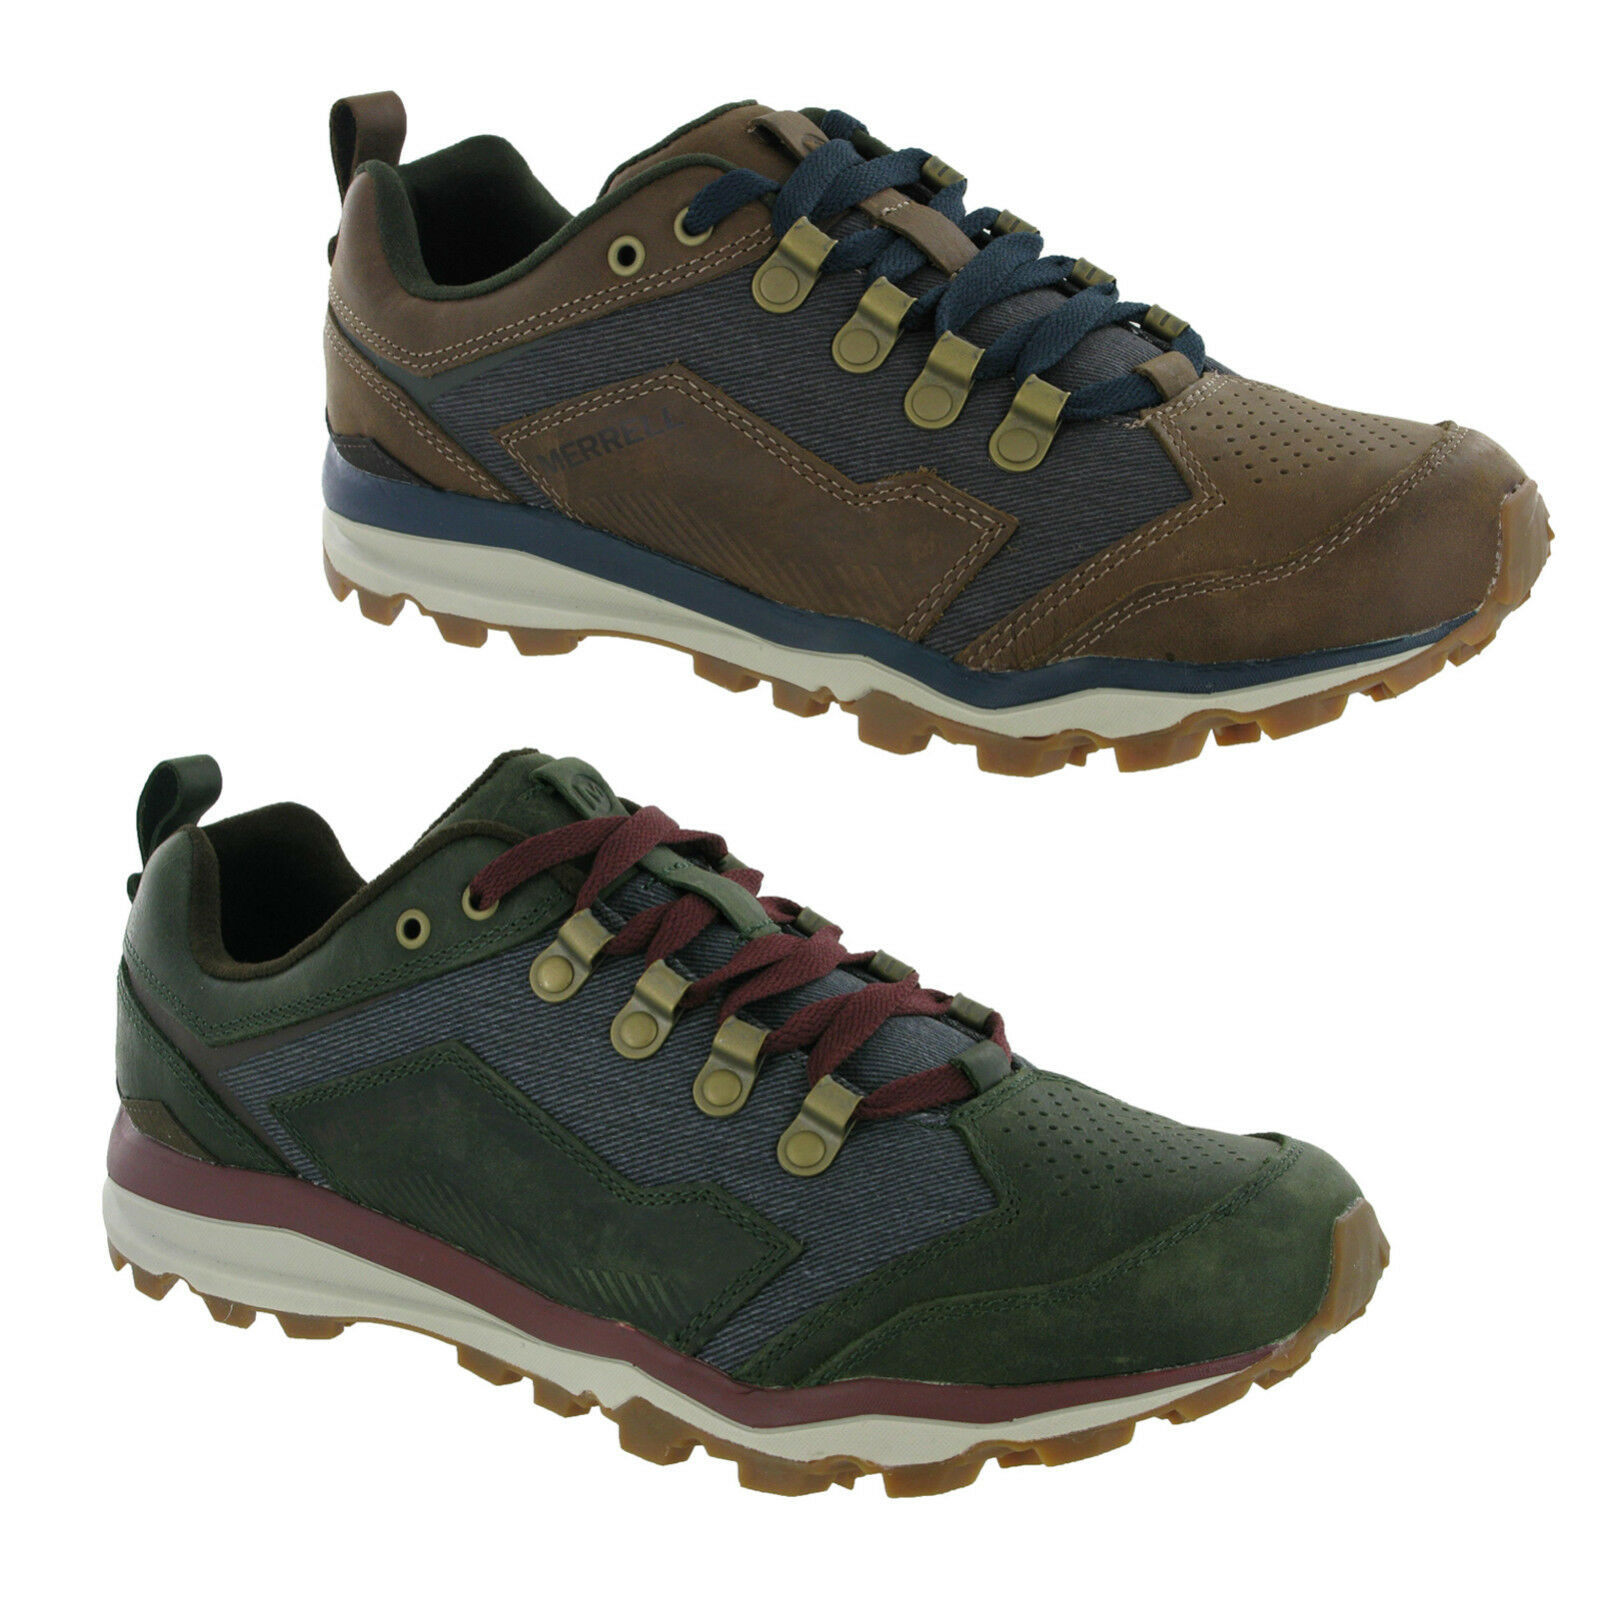 Merrell Walking shoes All Out Crusher Casual Comfort Lace Up Trekking Trainer